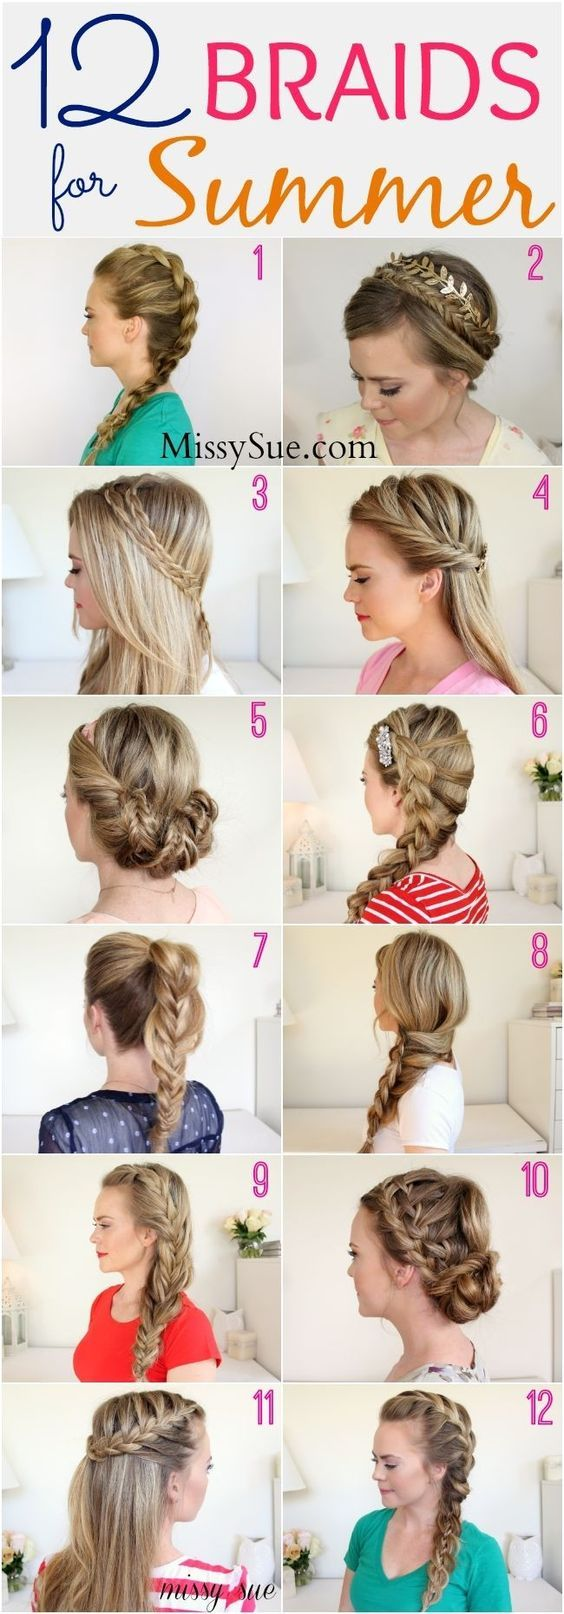 Braided hairstyle looks charming and luscious. If you want to add some special factors to your hair, you can try out the braided hairstyle. In this article, we will list you some impressive braided hairstyle. Rope Braid This charming braided hairstyle works greatly on long curly or straight hair. The rope braid is drawn across[Read the Rest]: